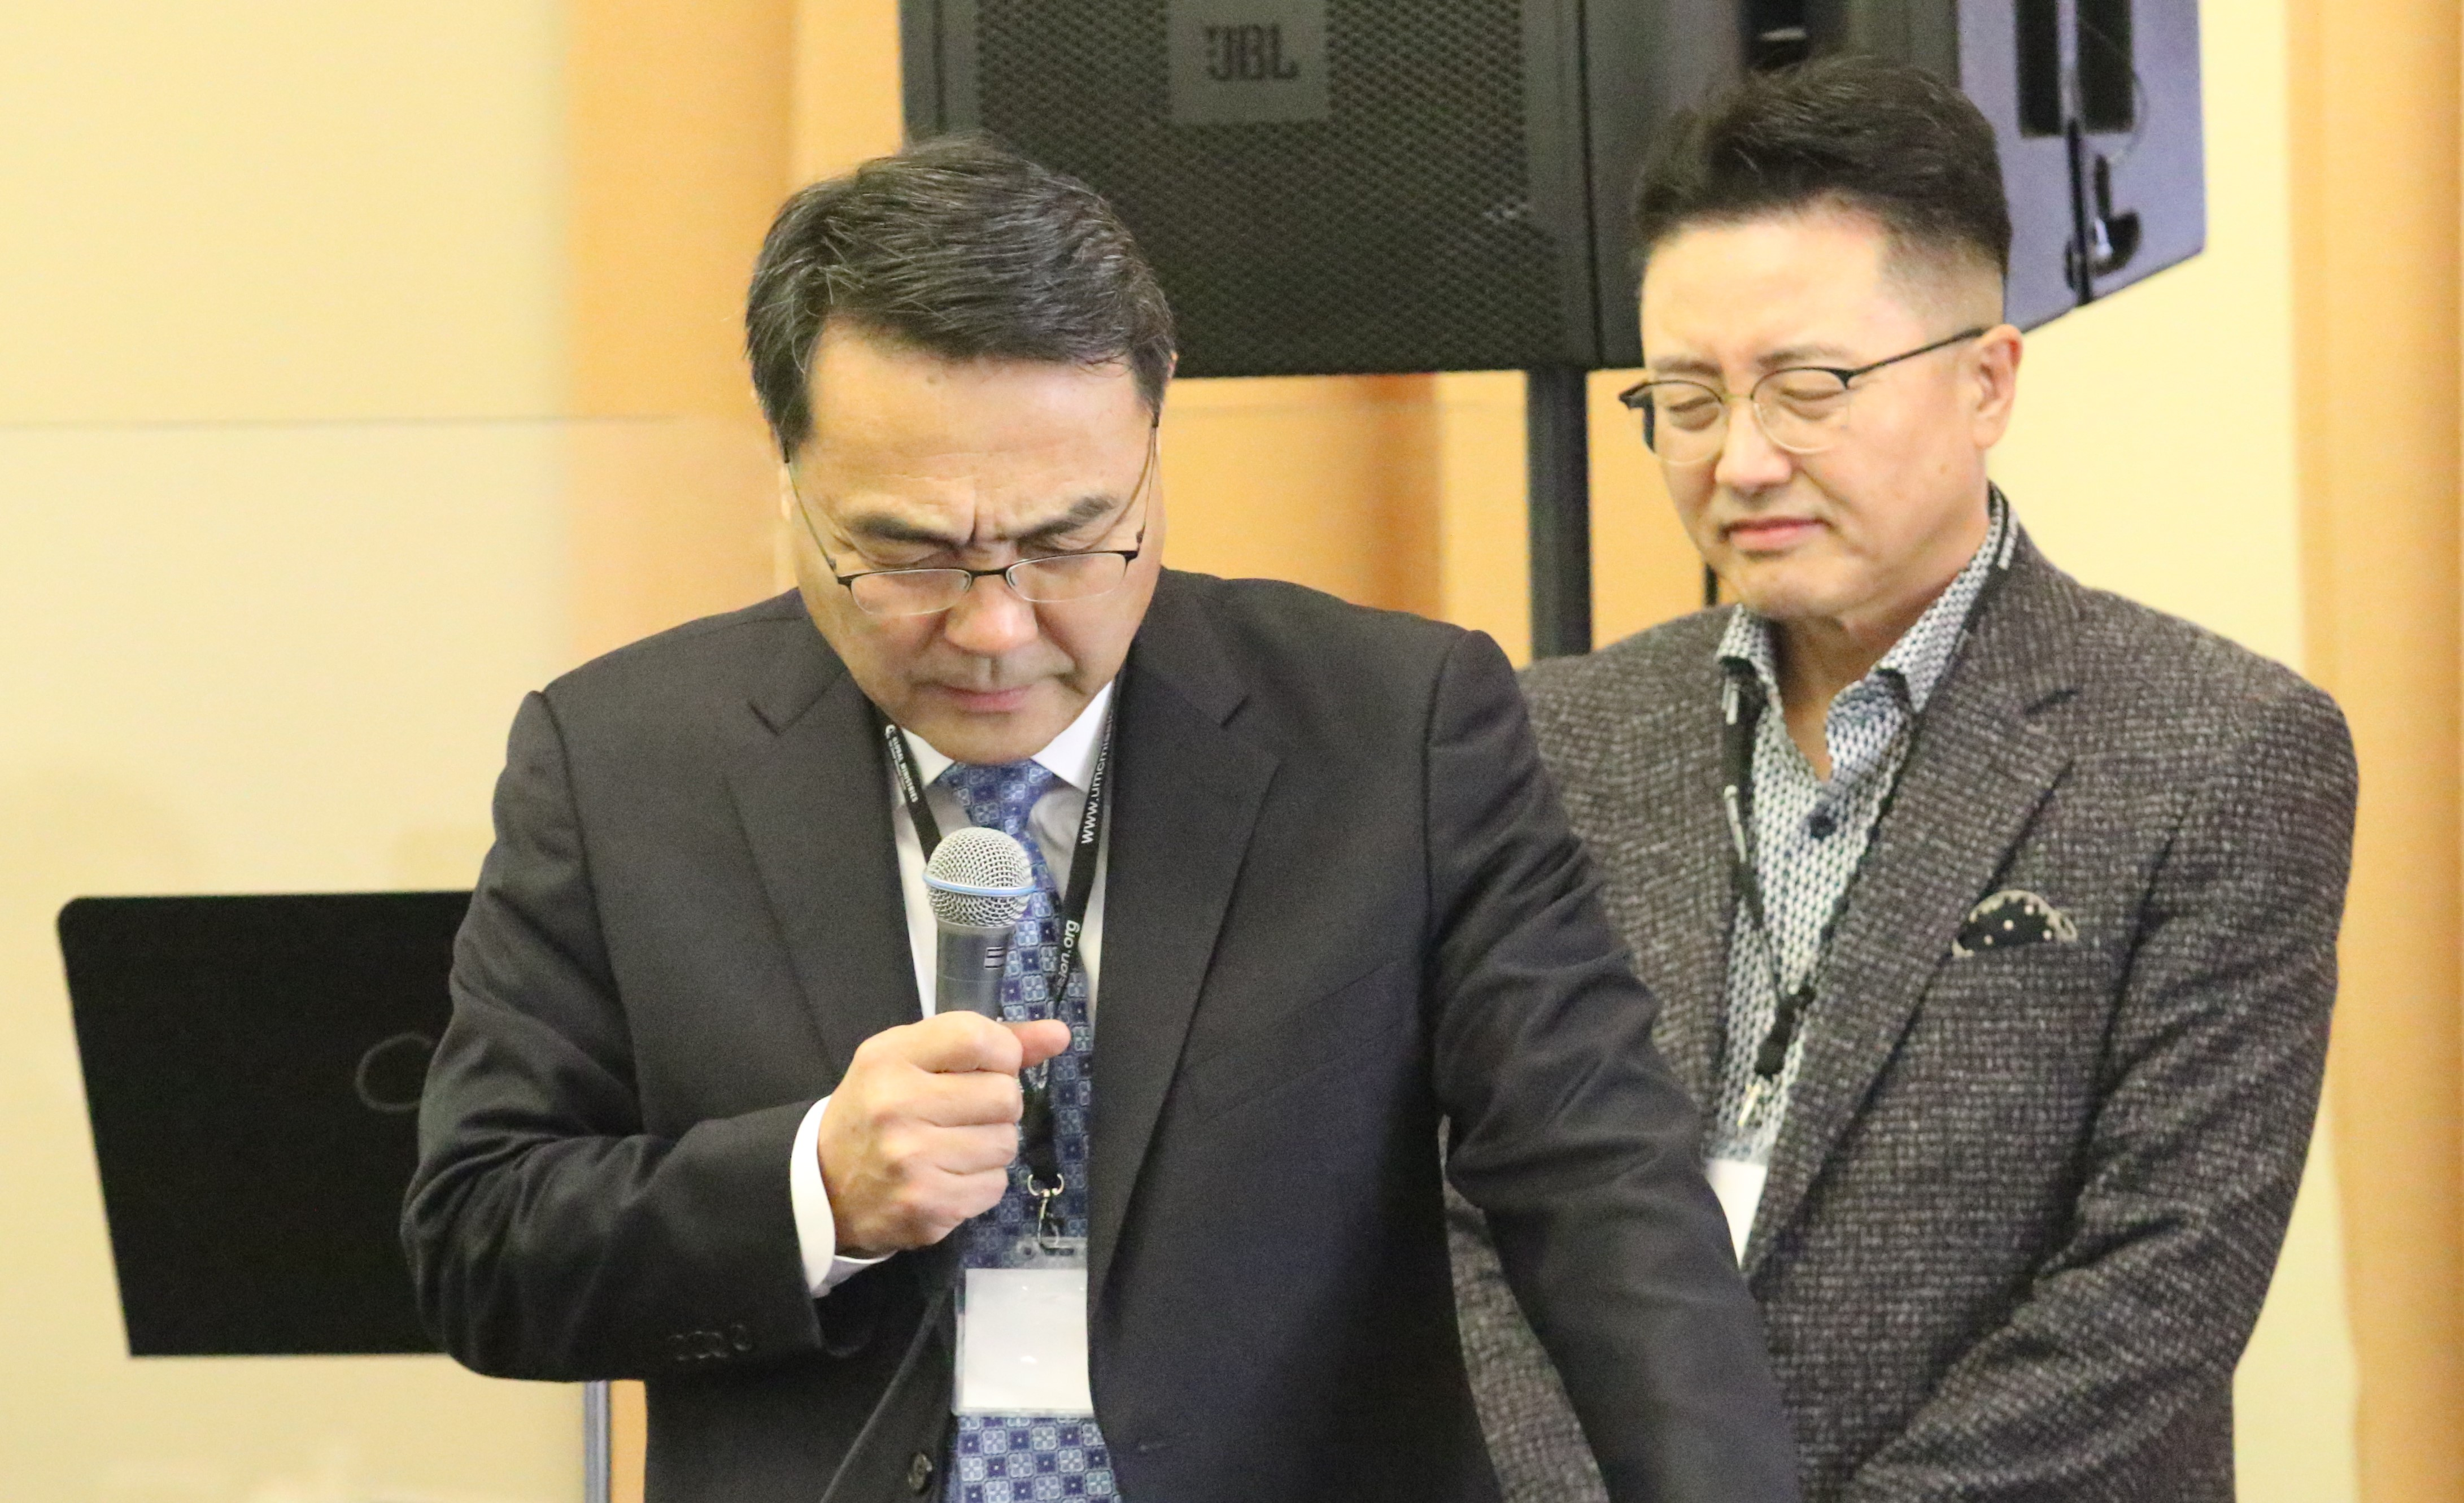 The Rev. Chongho Kim (left) prayed for the meeting. Standing by him is the Rev. Paul Chang, the executive director of the Korean Ministry Plan. Photo by Thomas Kim, UMNS.